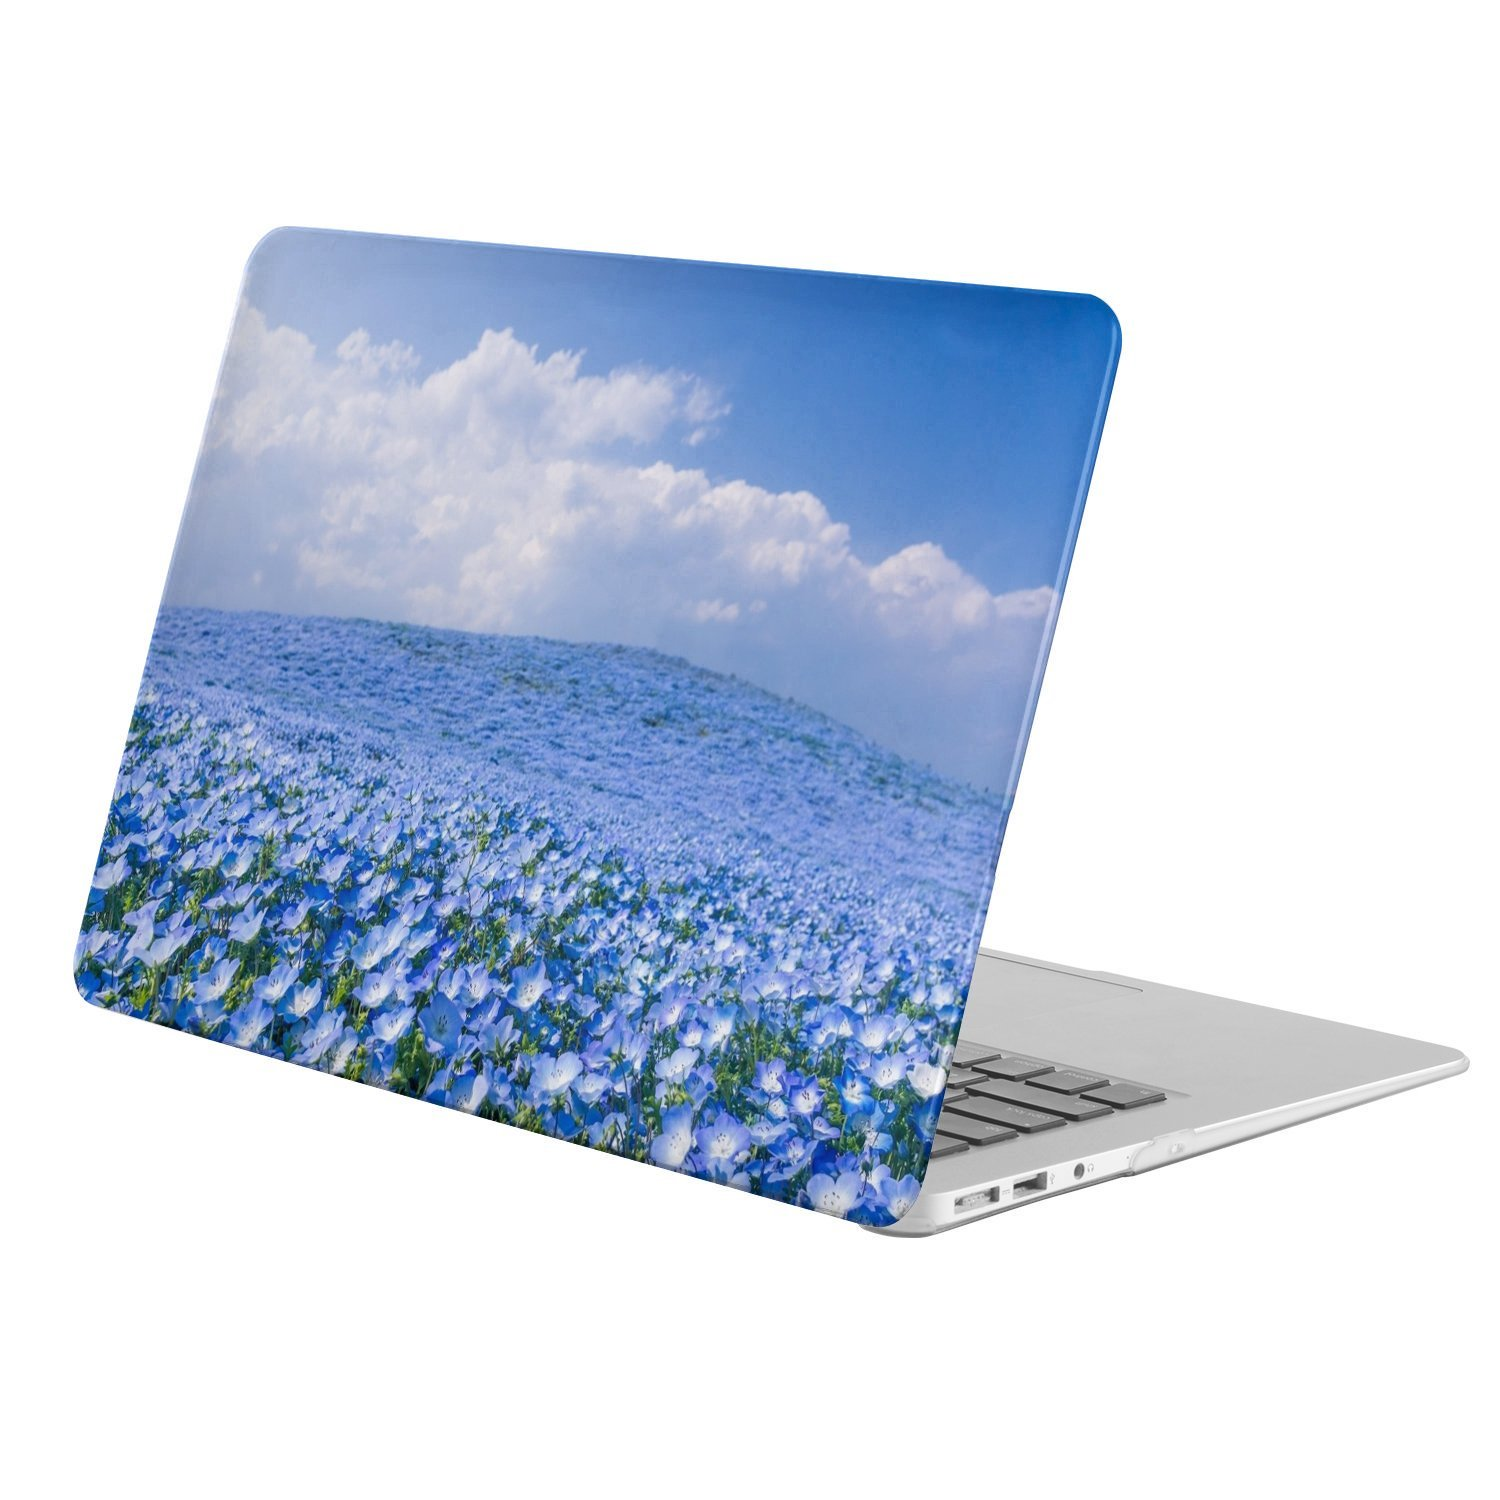 """PatternCover - Apple Old Macbook Pro 15.4-inch 15.4"""" with retina display (model: A1398) - full body hard case - Earth Flower Flowers Nature Field Blue Flower Sky Cloud"""